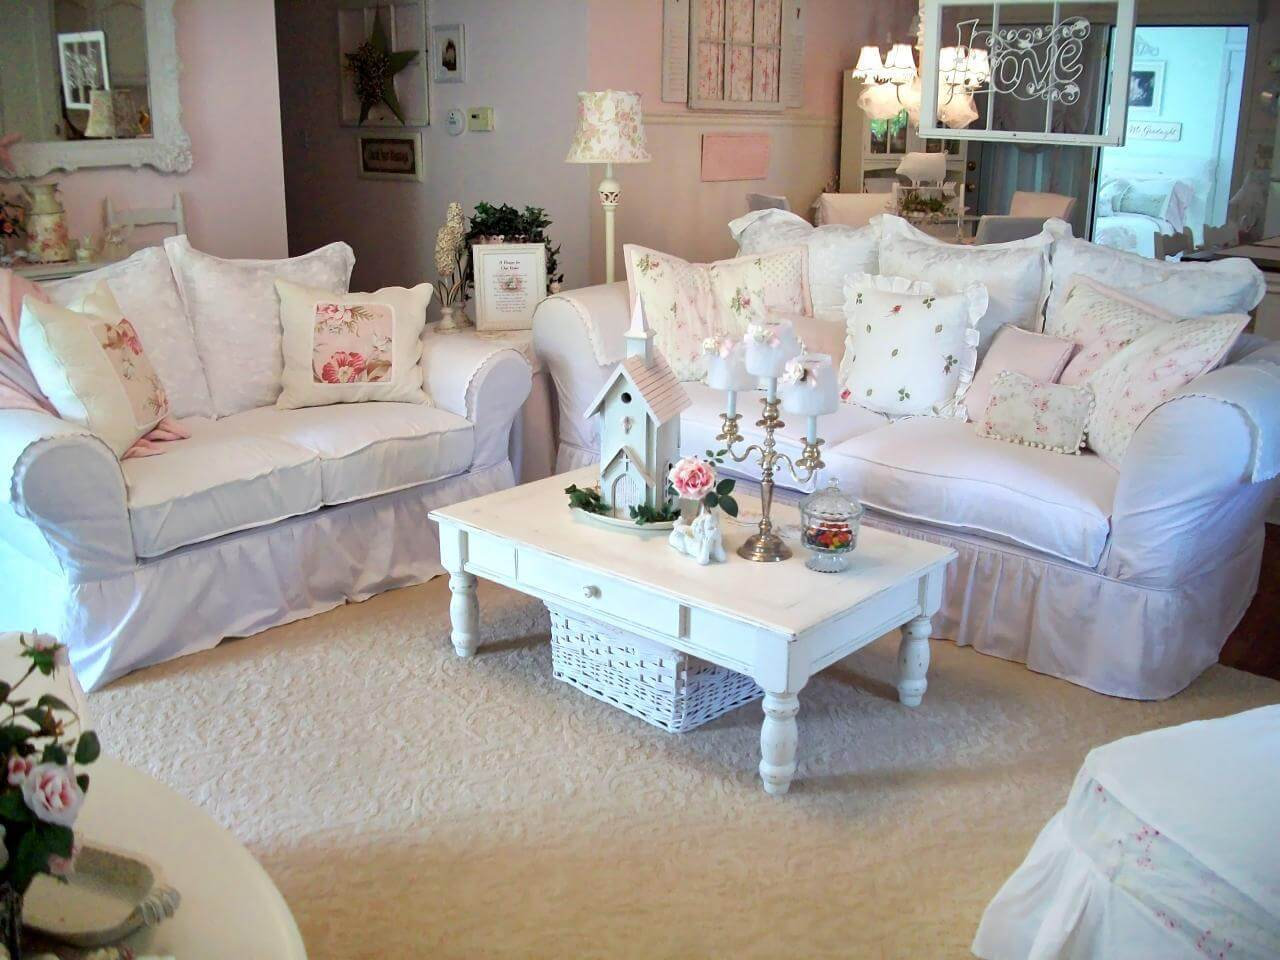 5. Cozy White Couches With Cushions Great Ideas